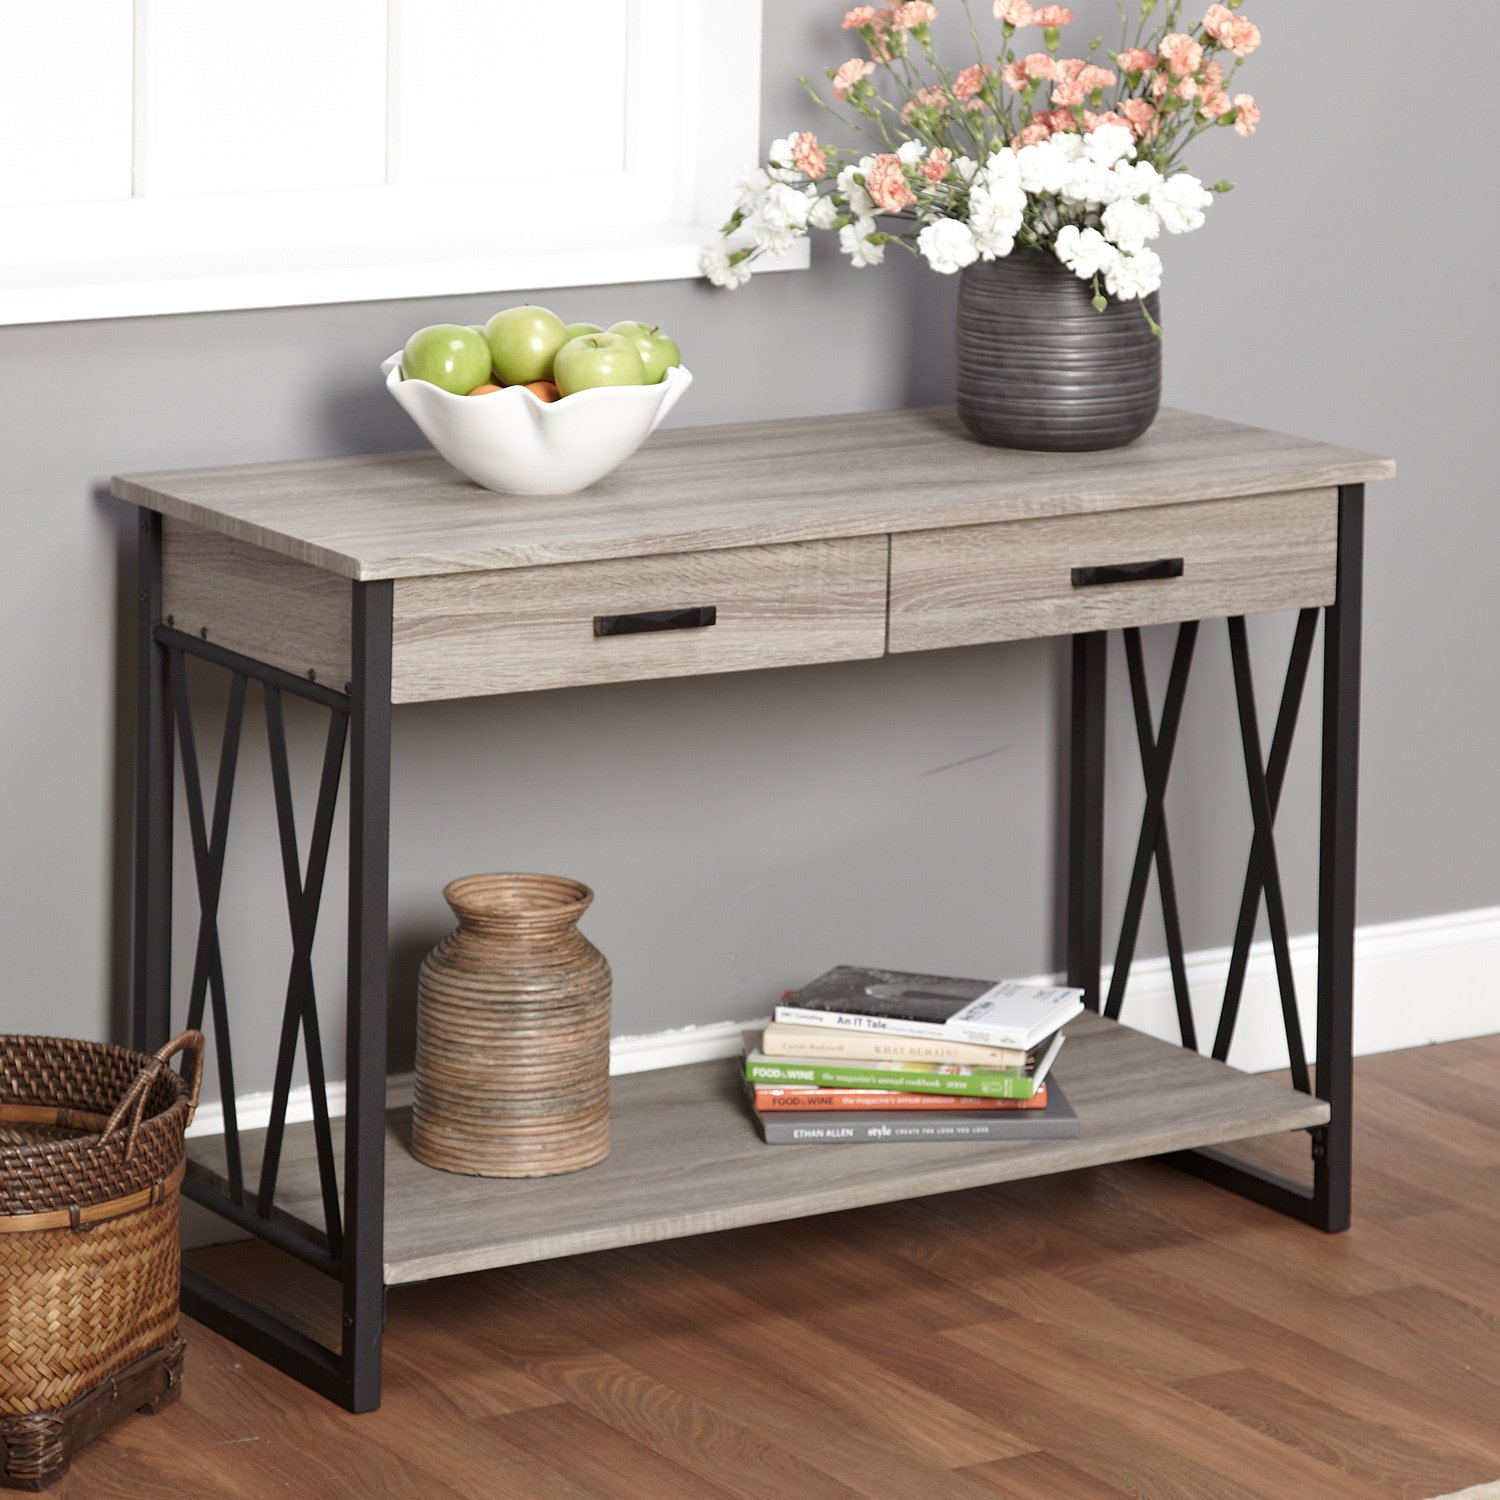 Console sofa table living home furniture decor room for Entryway furniture